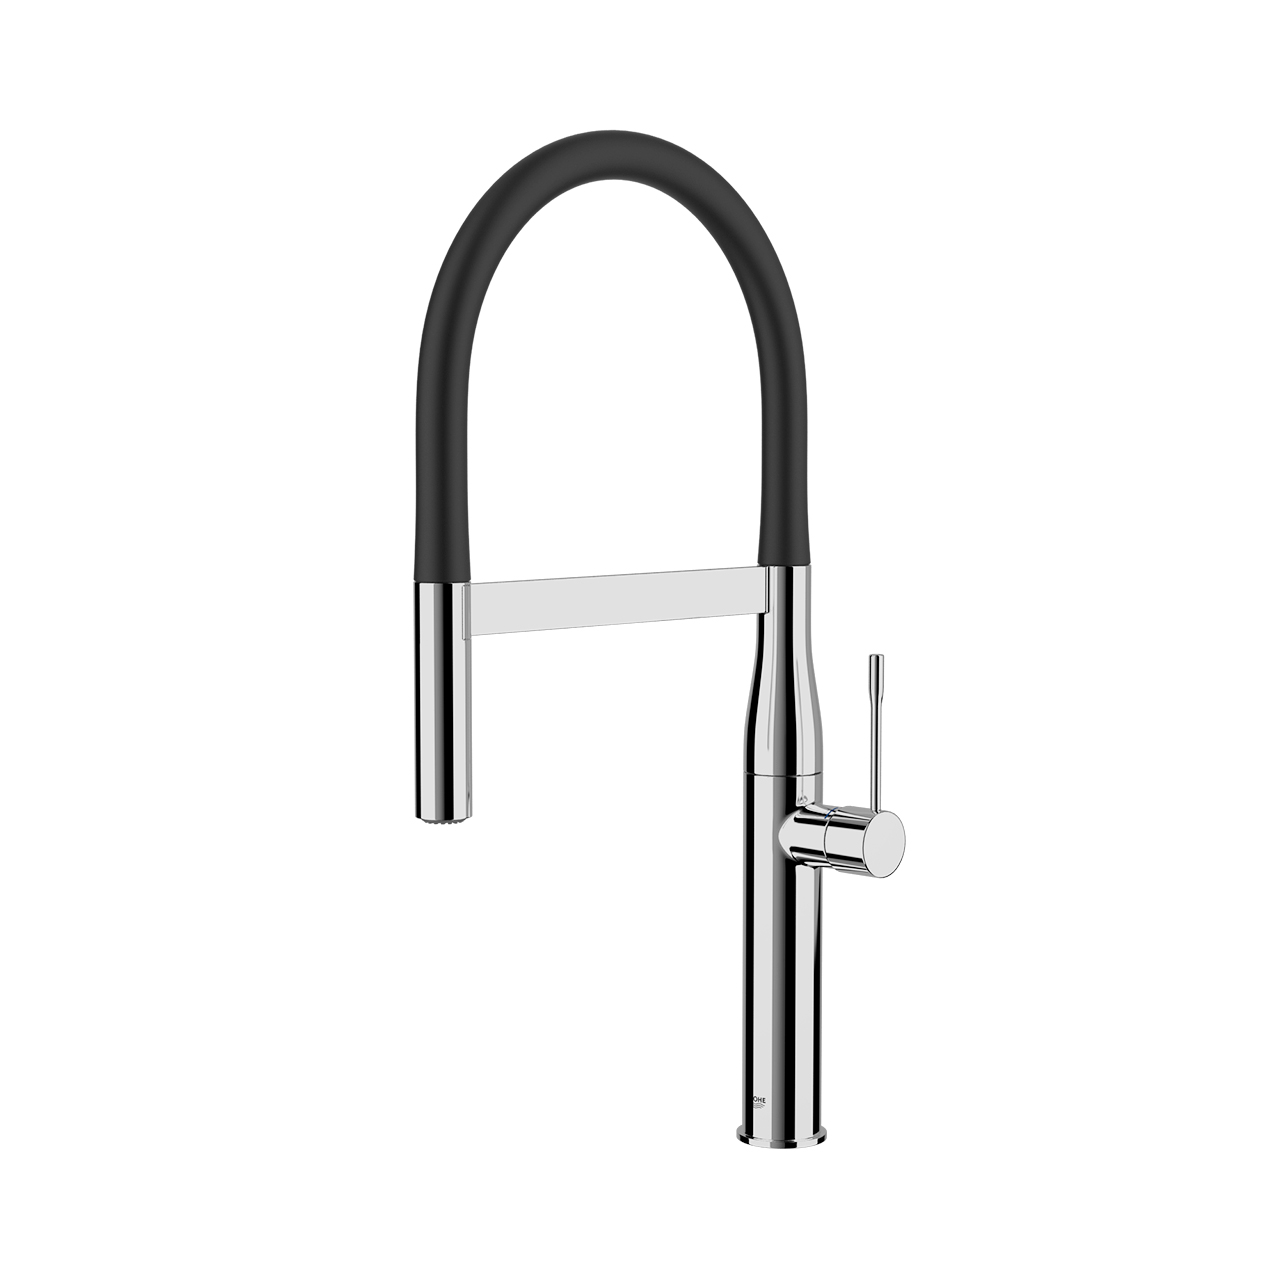 Essence New Kitchen Mixer Tap by Grohe